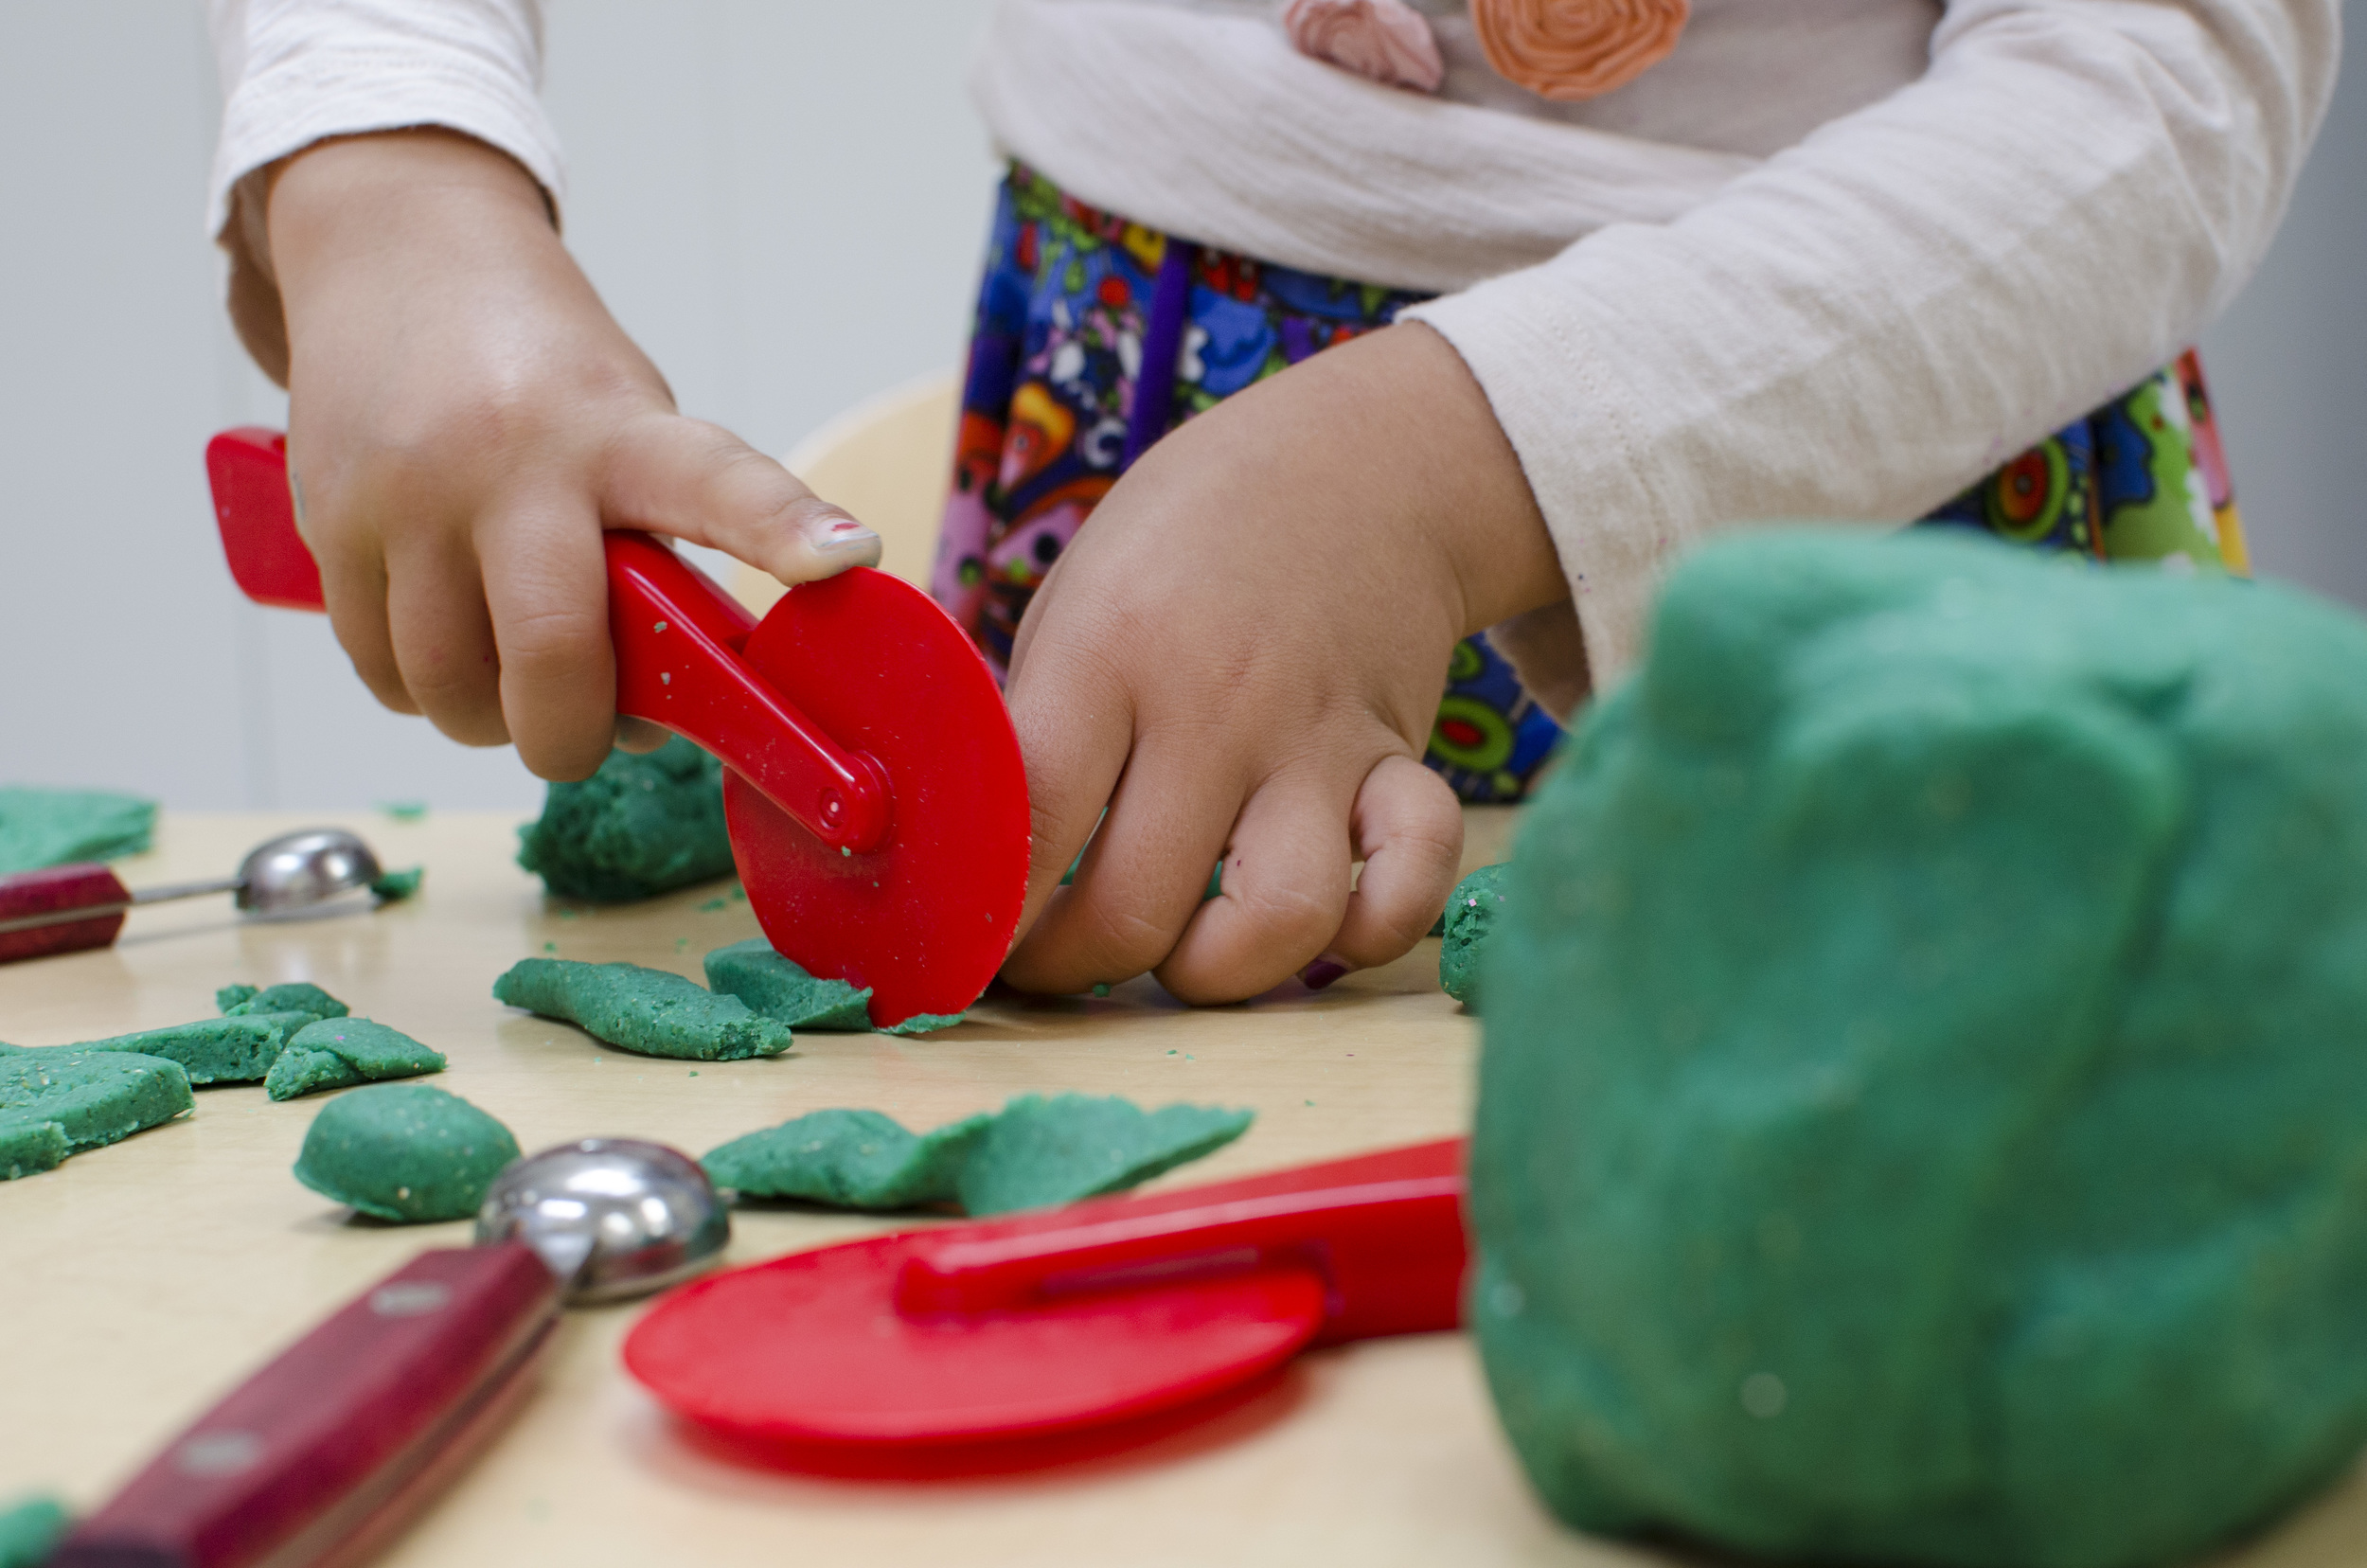 Playdough is soothing to touch, has an infinite number of uses in imaginary play, offers opportunities for sharing, and strengthens the muscles in fingers and hands.